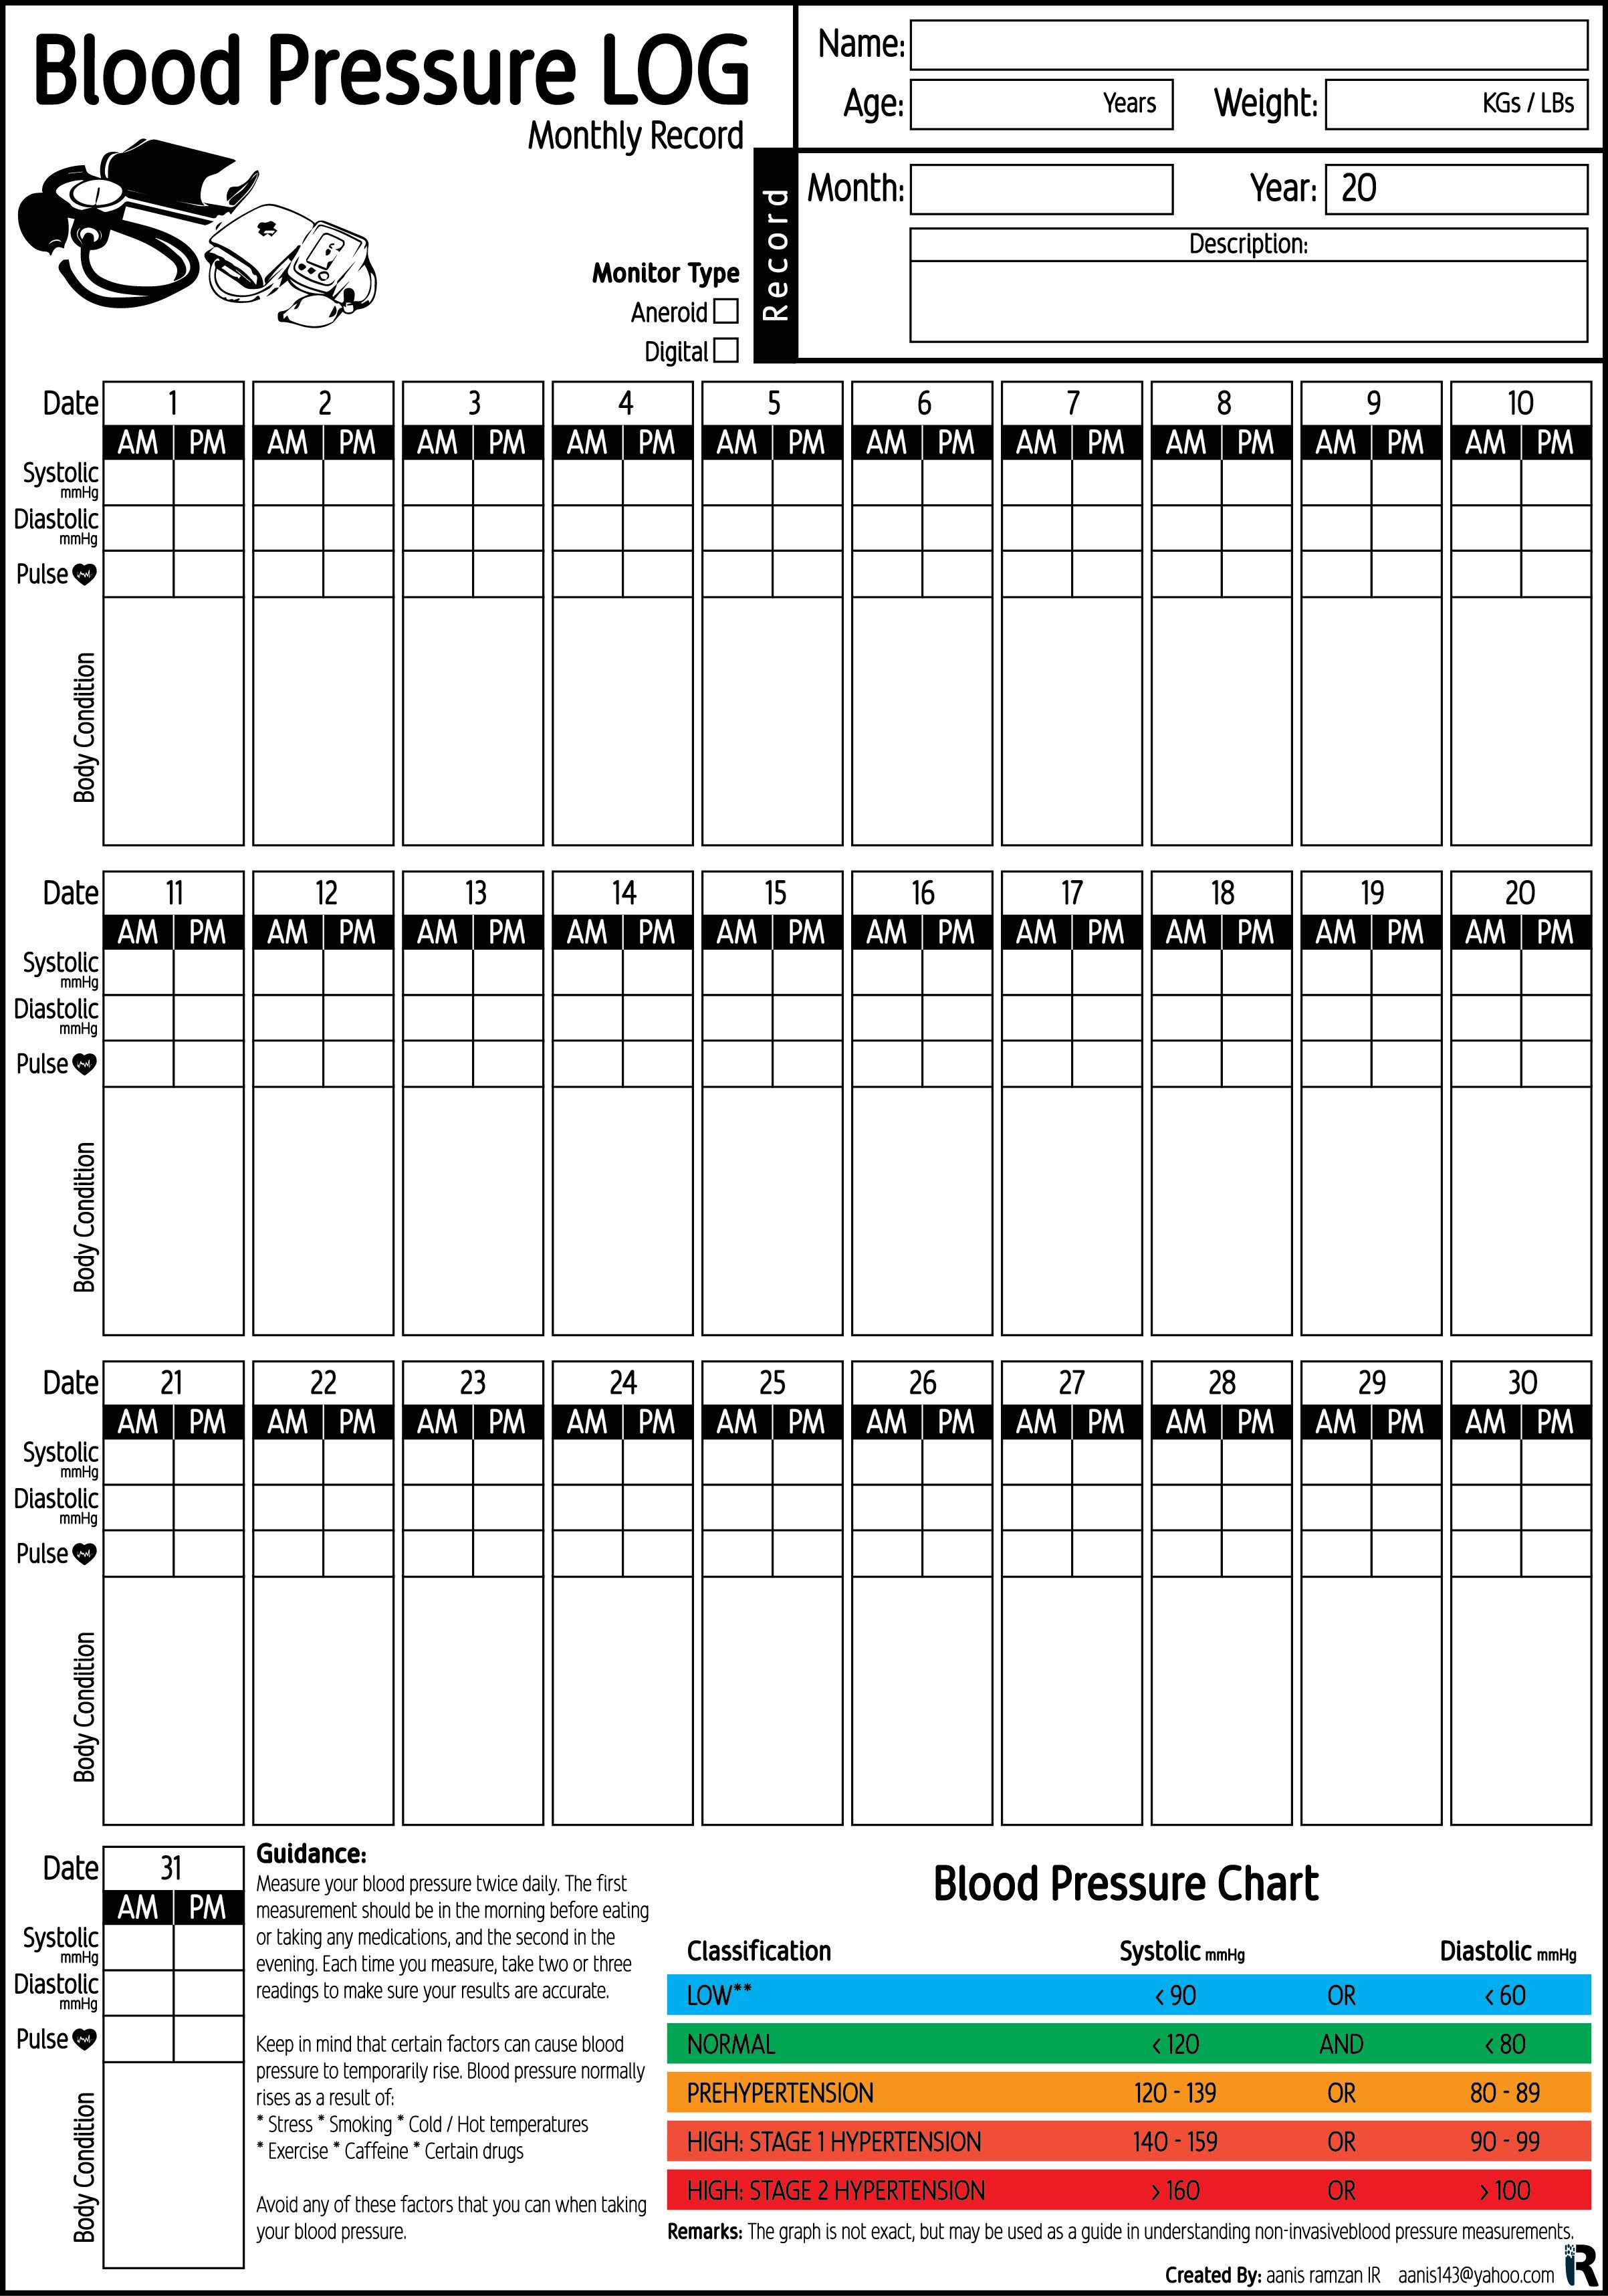 Blood Pressure Record Chart Blood Pressure Log Monthly Record Pdf Printable by Aanis